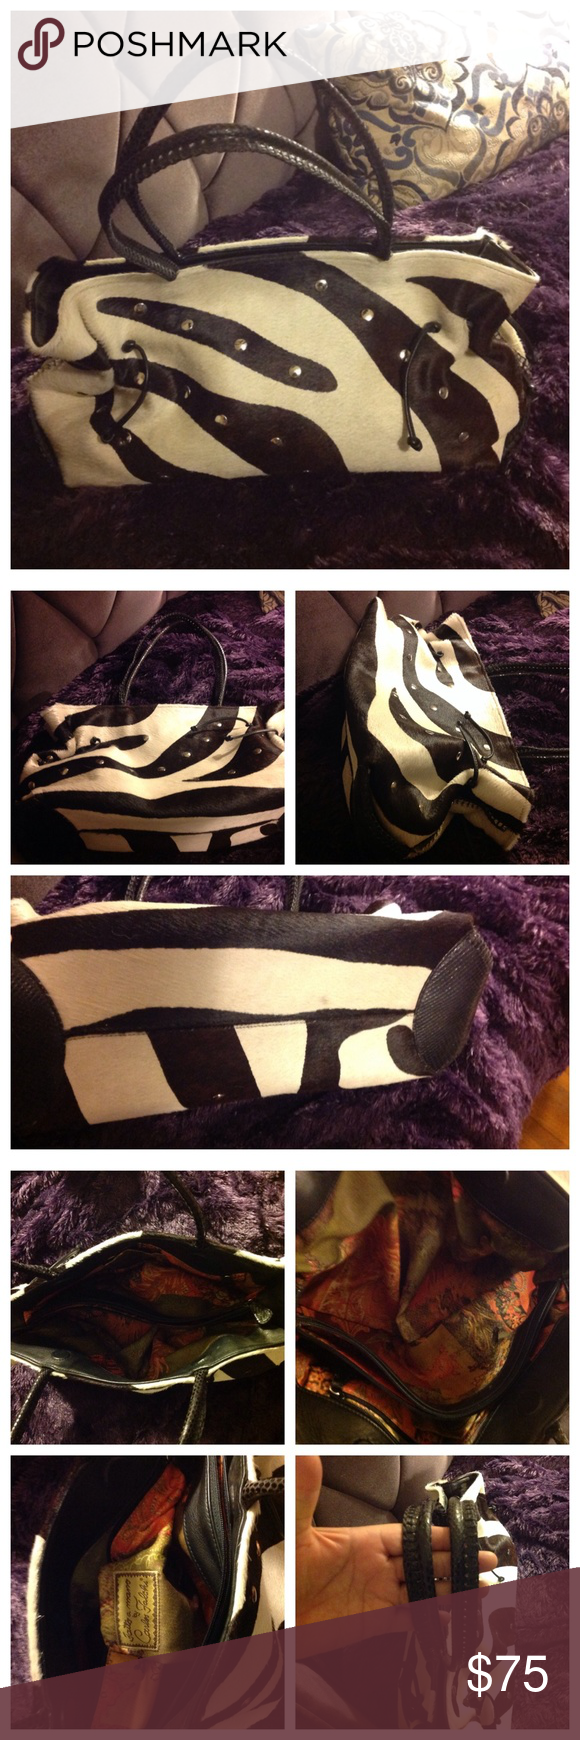 """Black white studded calf hair Carlos Falchi Bag Great, great calf hair bag that looks fabulous on the shoulder. This """"carpet bag"""" fits a ton and has lots of pockets to keep you organized. It's by Carlos Falchi """"Fatto a Mano,"""" and it is either calf hair or pony hair. Lovelier in person, this black and cream bag is a great winter bag! Calf hair shows some wear at the bottom ( see noticeable spot on bottom). Nice studs really set this bag off. Carlos Falchi Bags Satchels"""